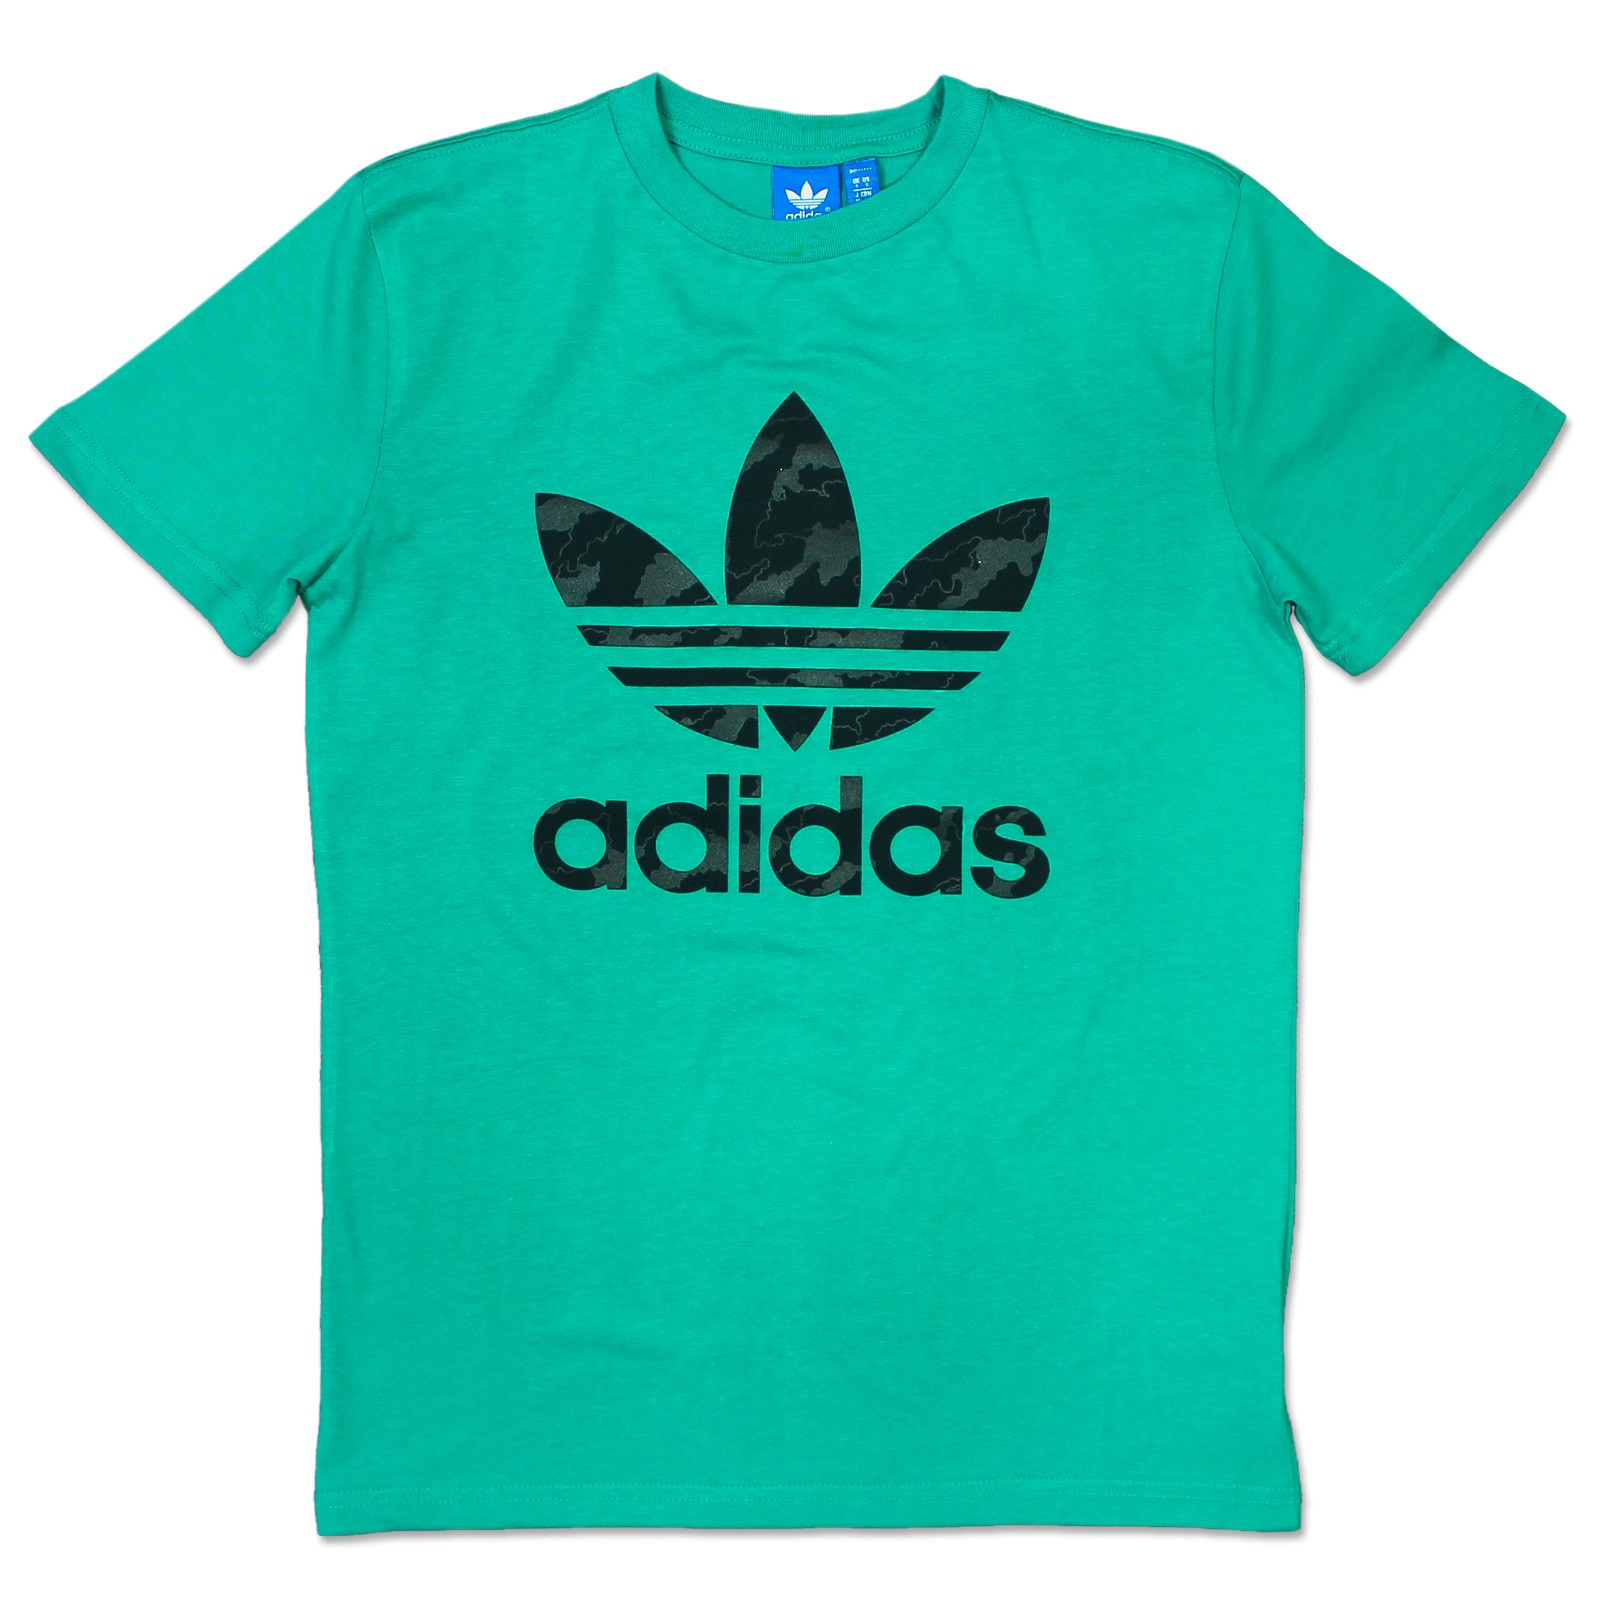 Adidas originals adi trefoil tee herren freizeit kult t for Adidas long sleeve t shirt with trefoil logo